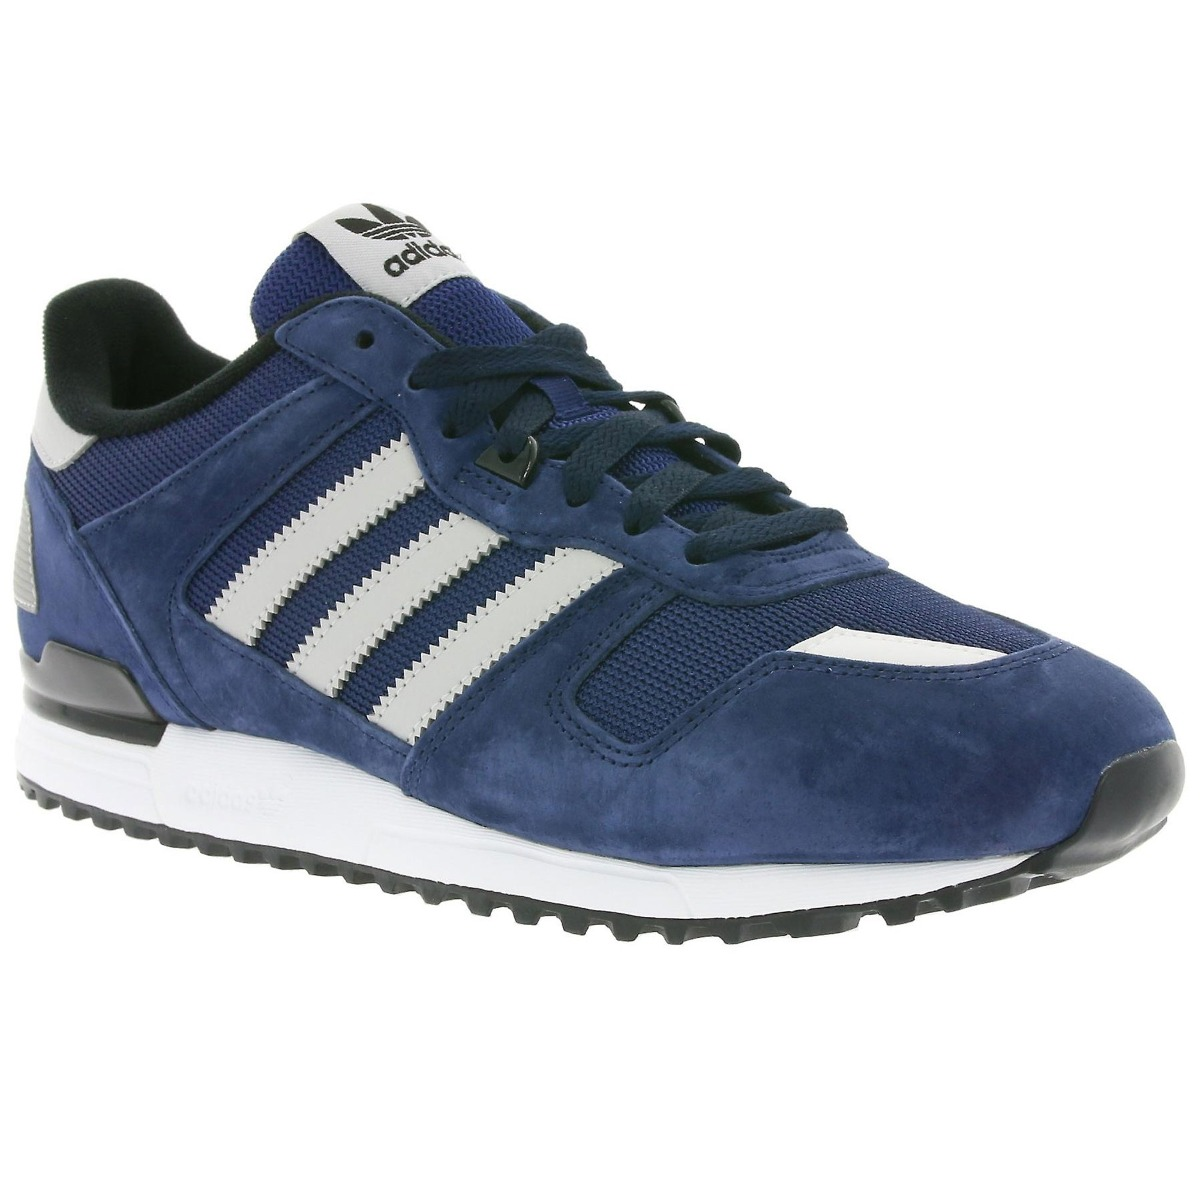 coupon code for adidas s79182 zx 700 7307a 16fa1